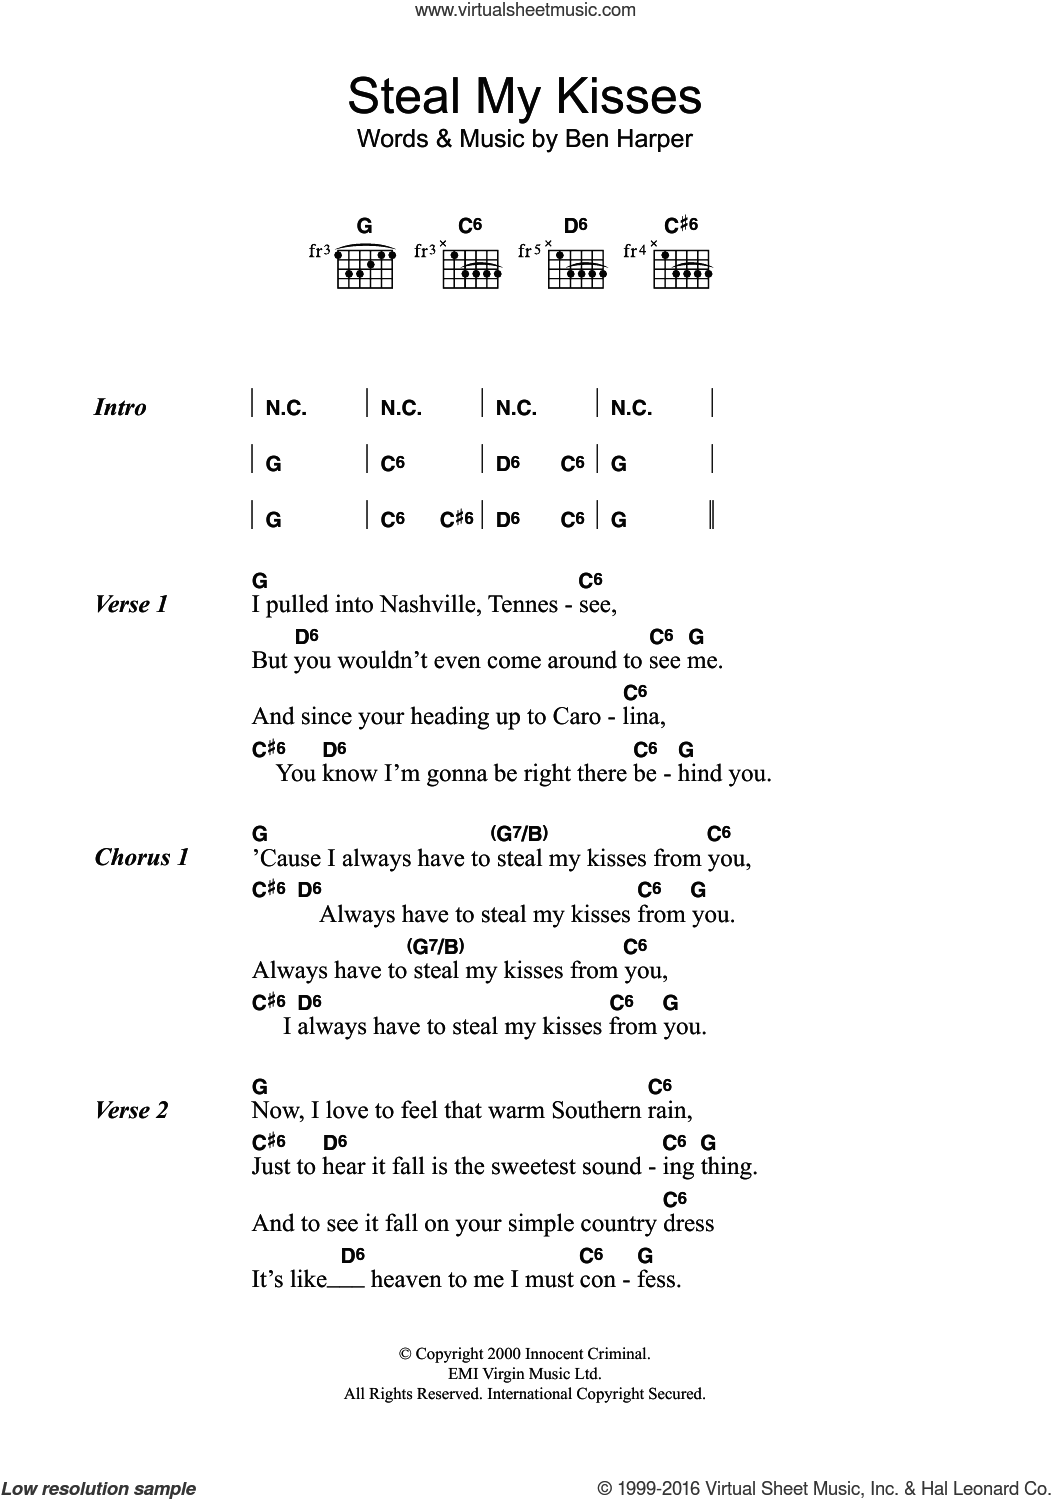 Steal My Kisses sheet music for guitar (chords) by Ben Harper, intermediate skill level